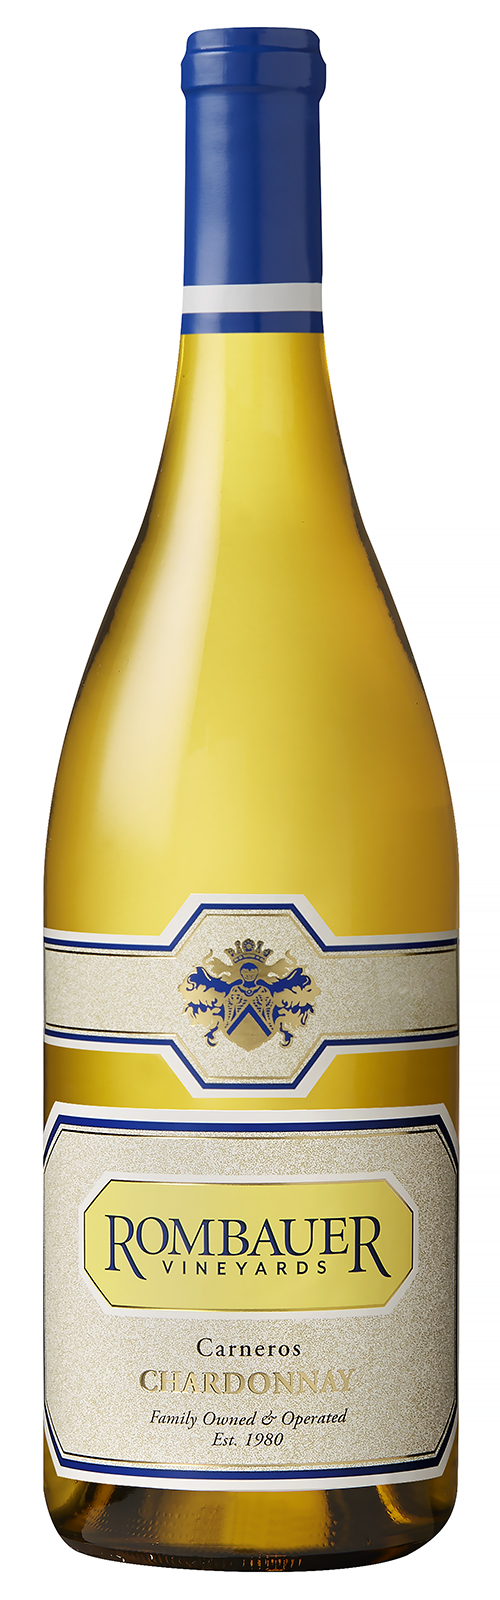 Rombauer Chardonnay Carneros 750ml 2015,  () from The BPW - Merchants of rare and fine wines.